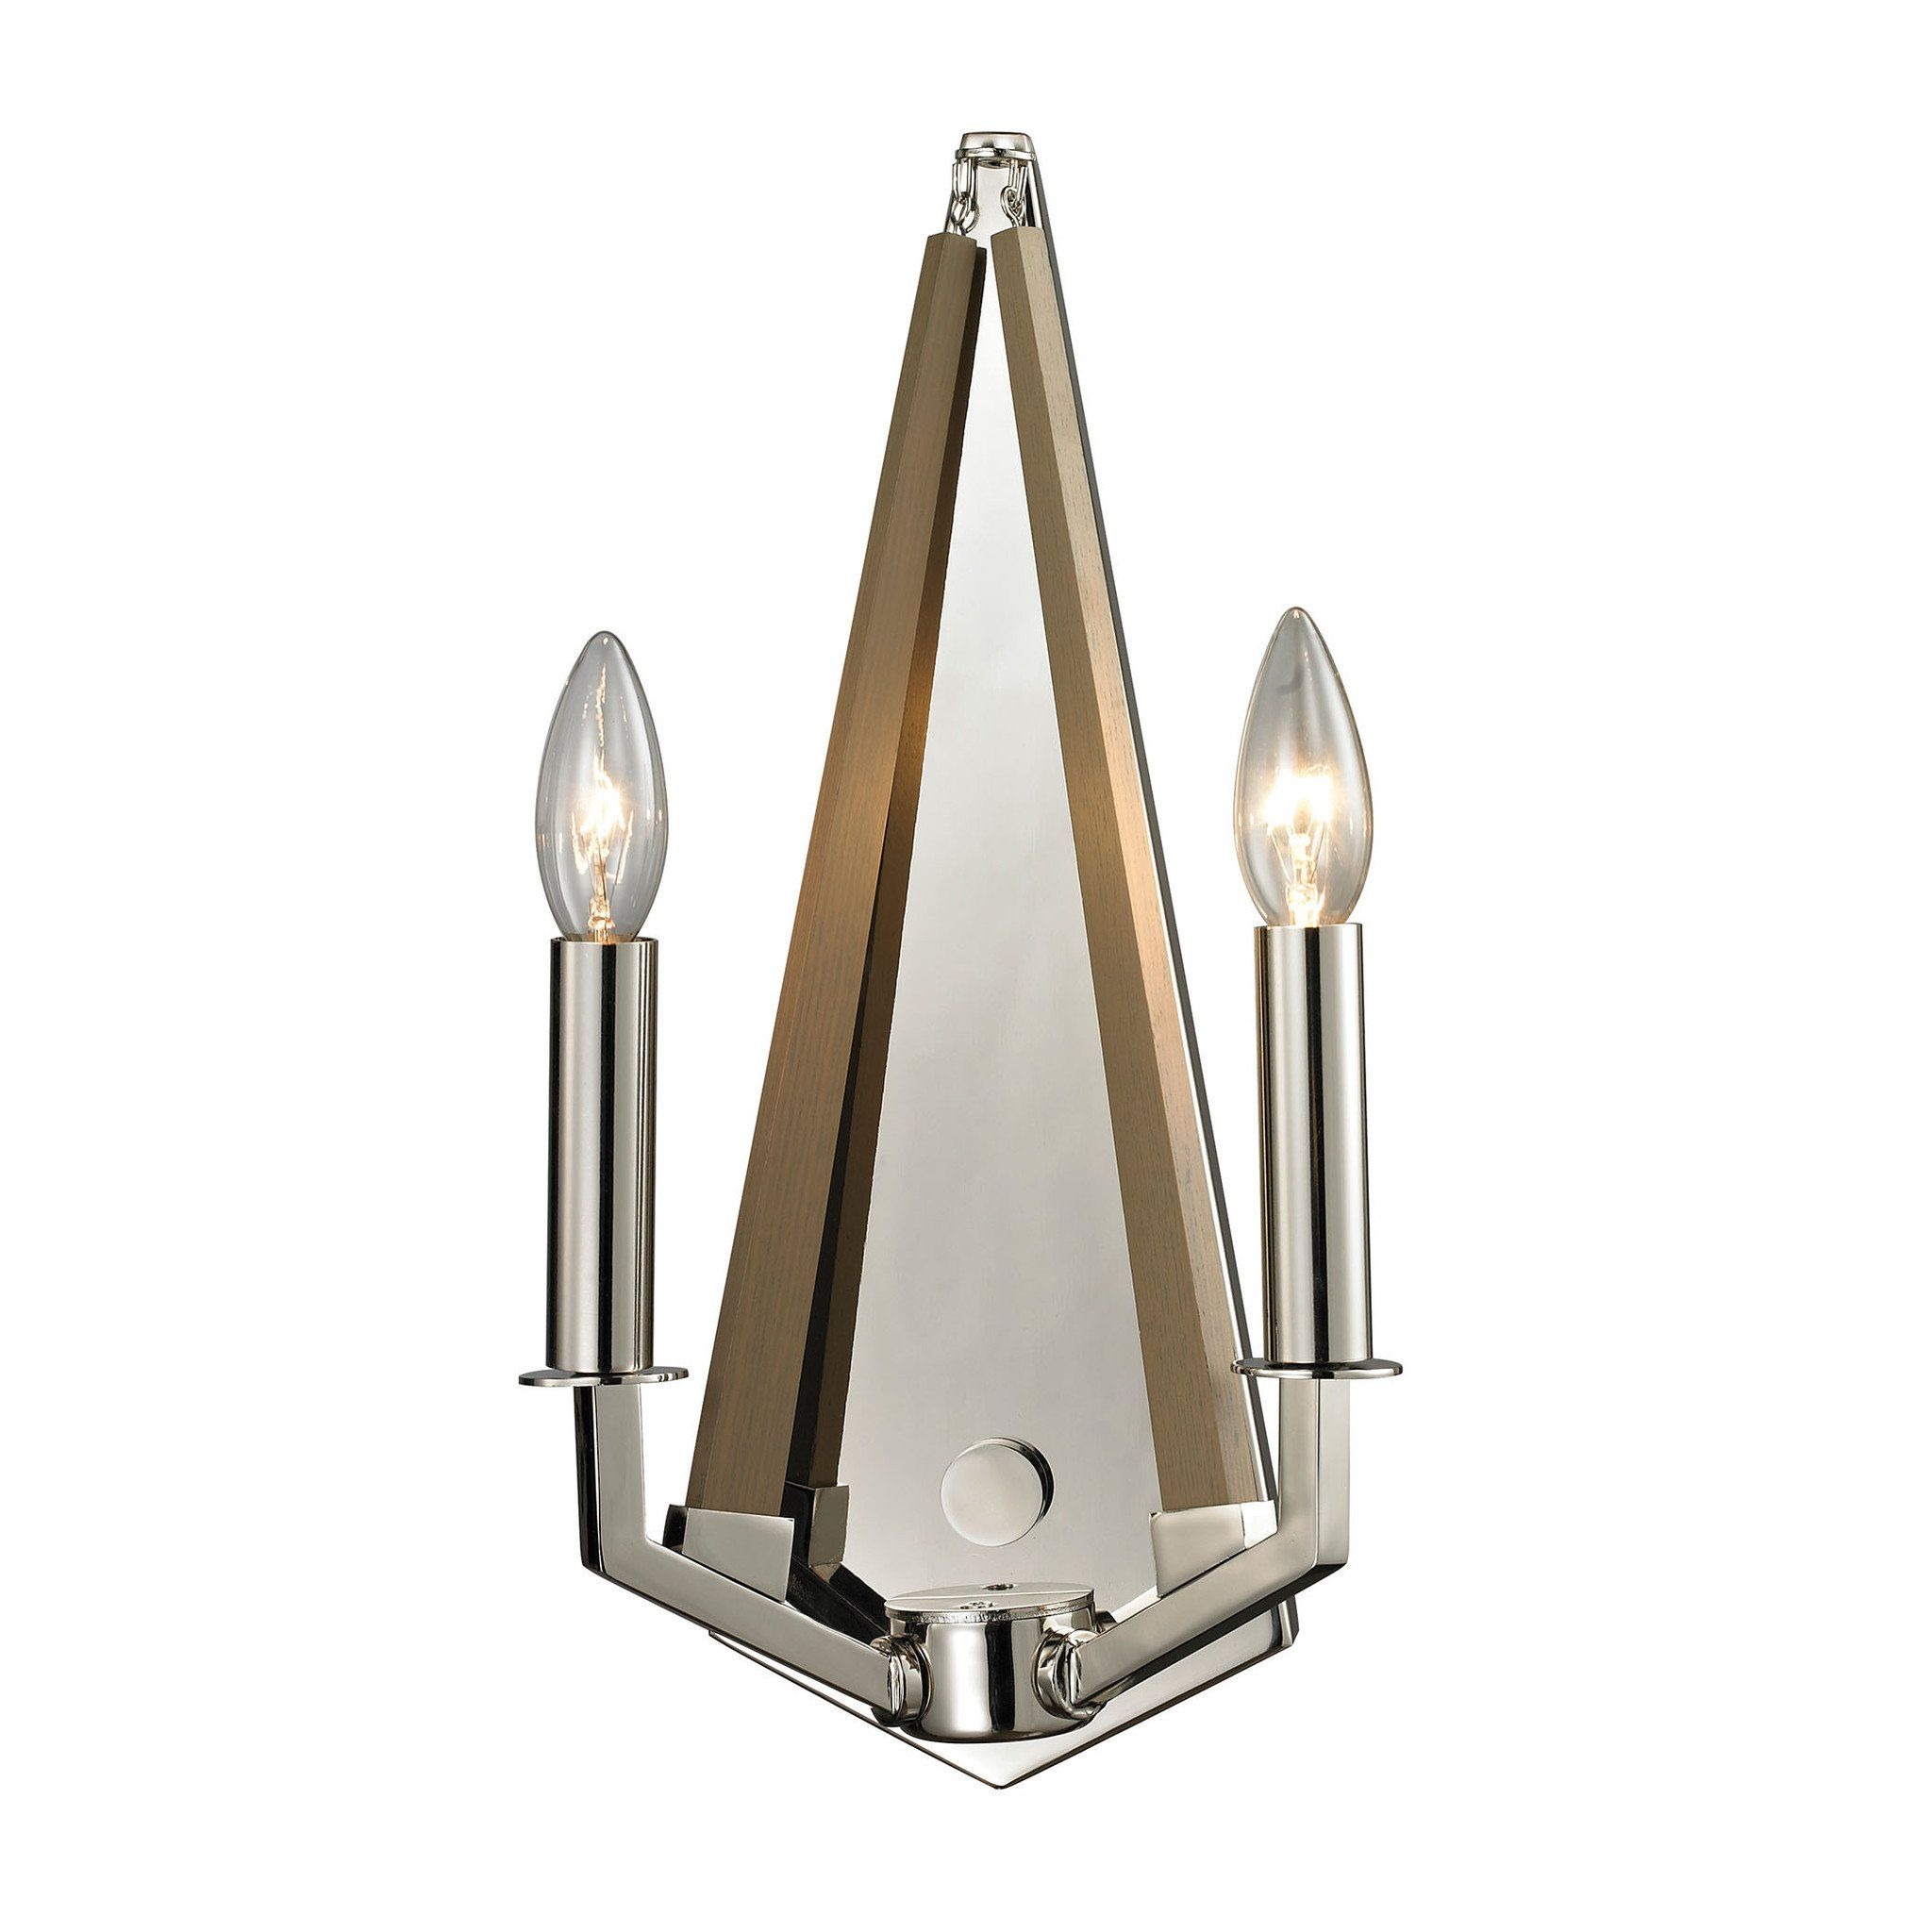 ELK Lighting 31470/2 Madera Collection Polished Nickel, Taupe Finish